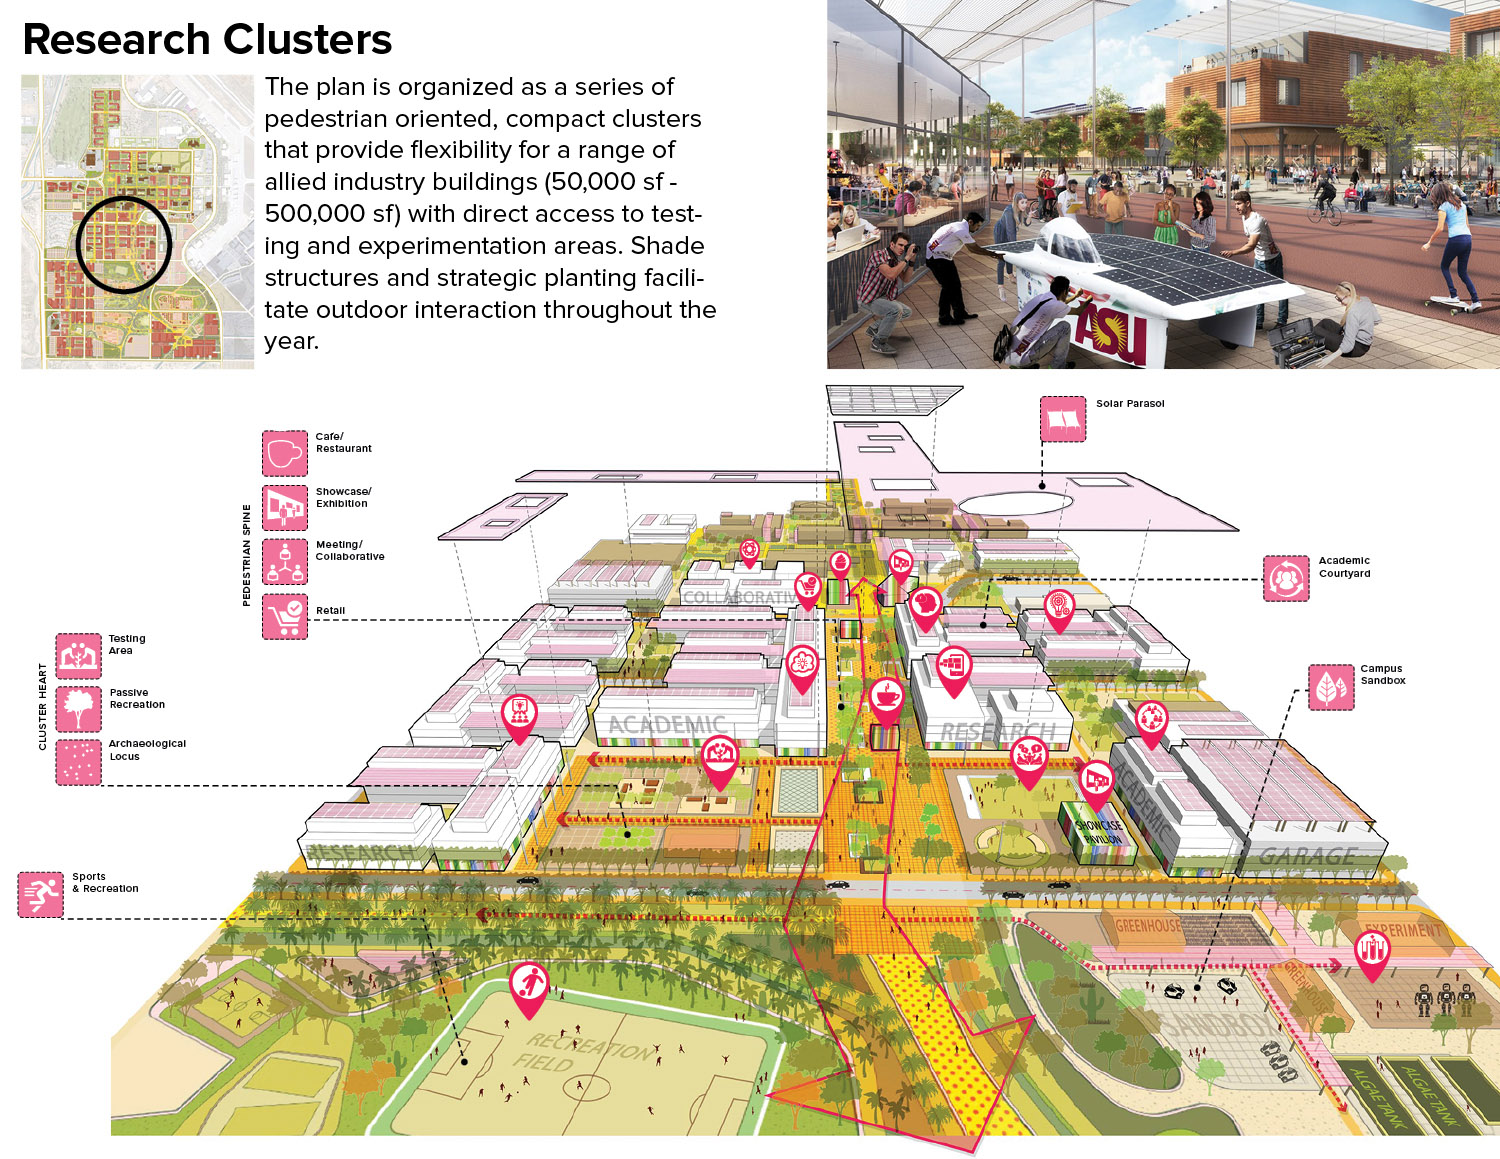 The Plan is Organized as a Series of Pedestrian Oriented Compact Clusters Sasaki